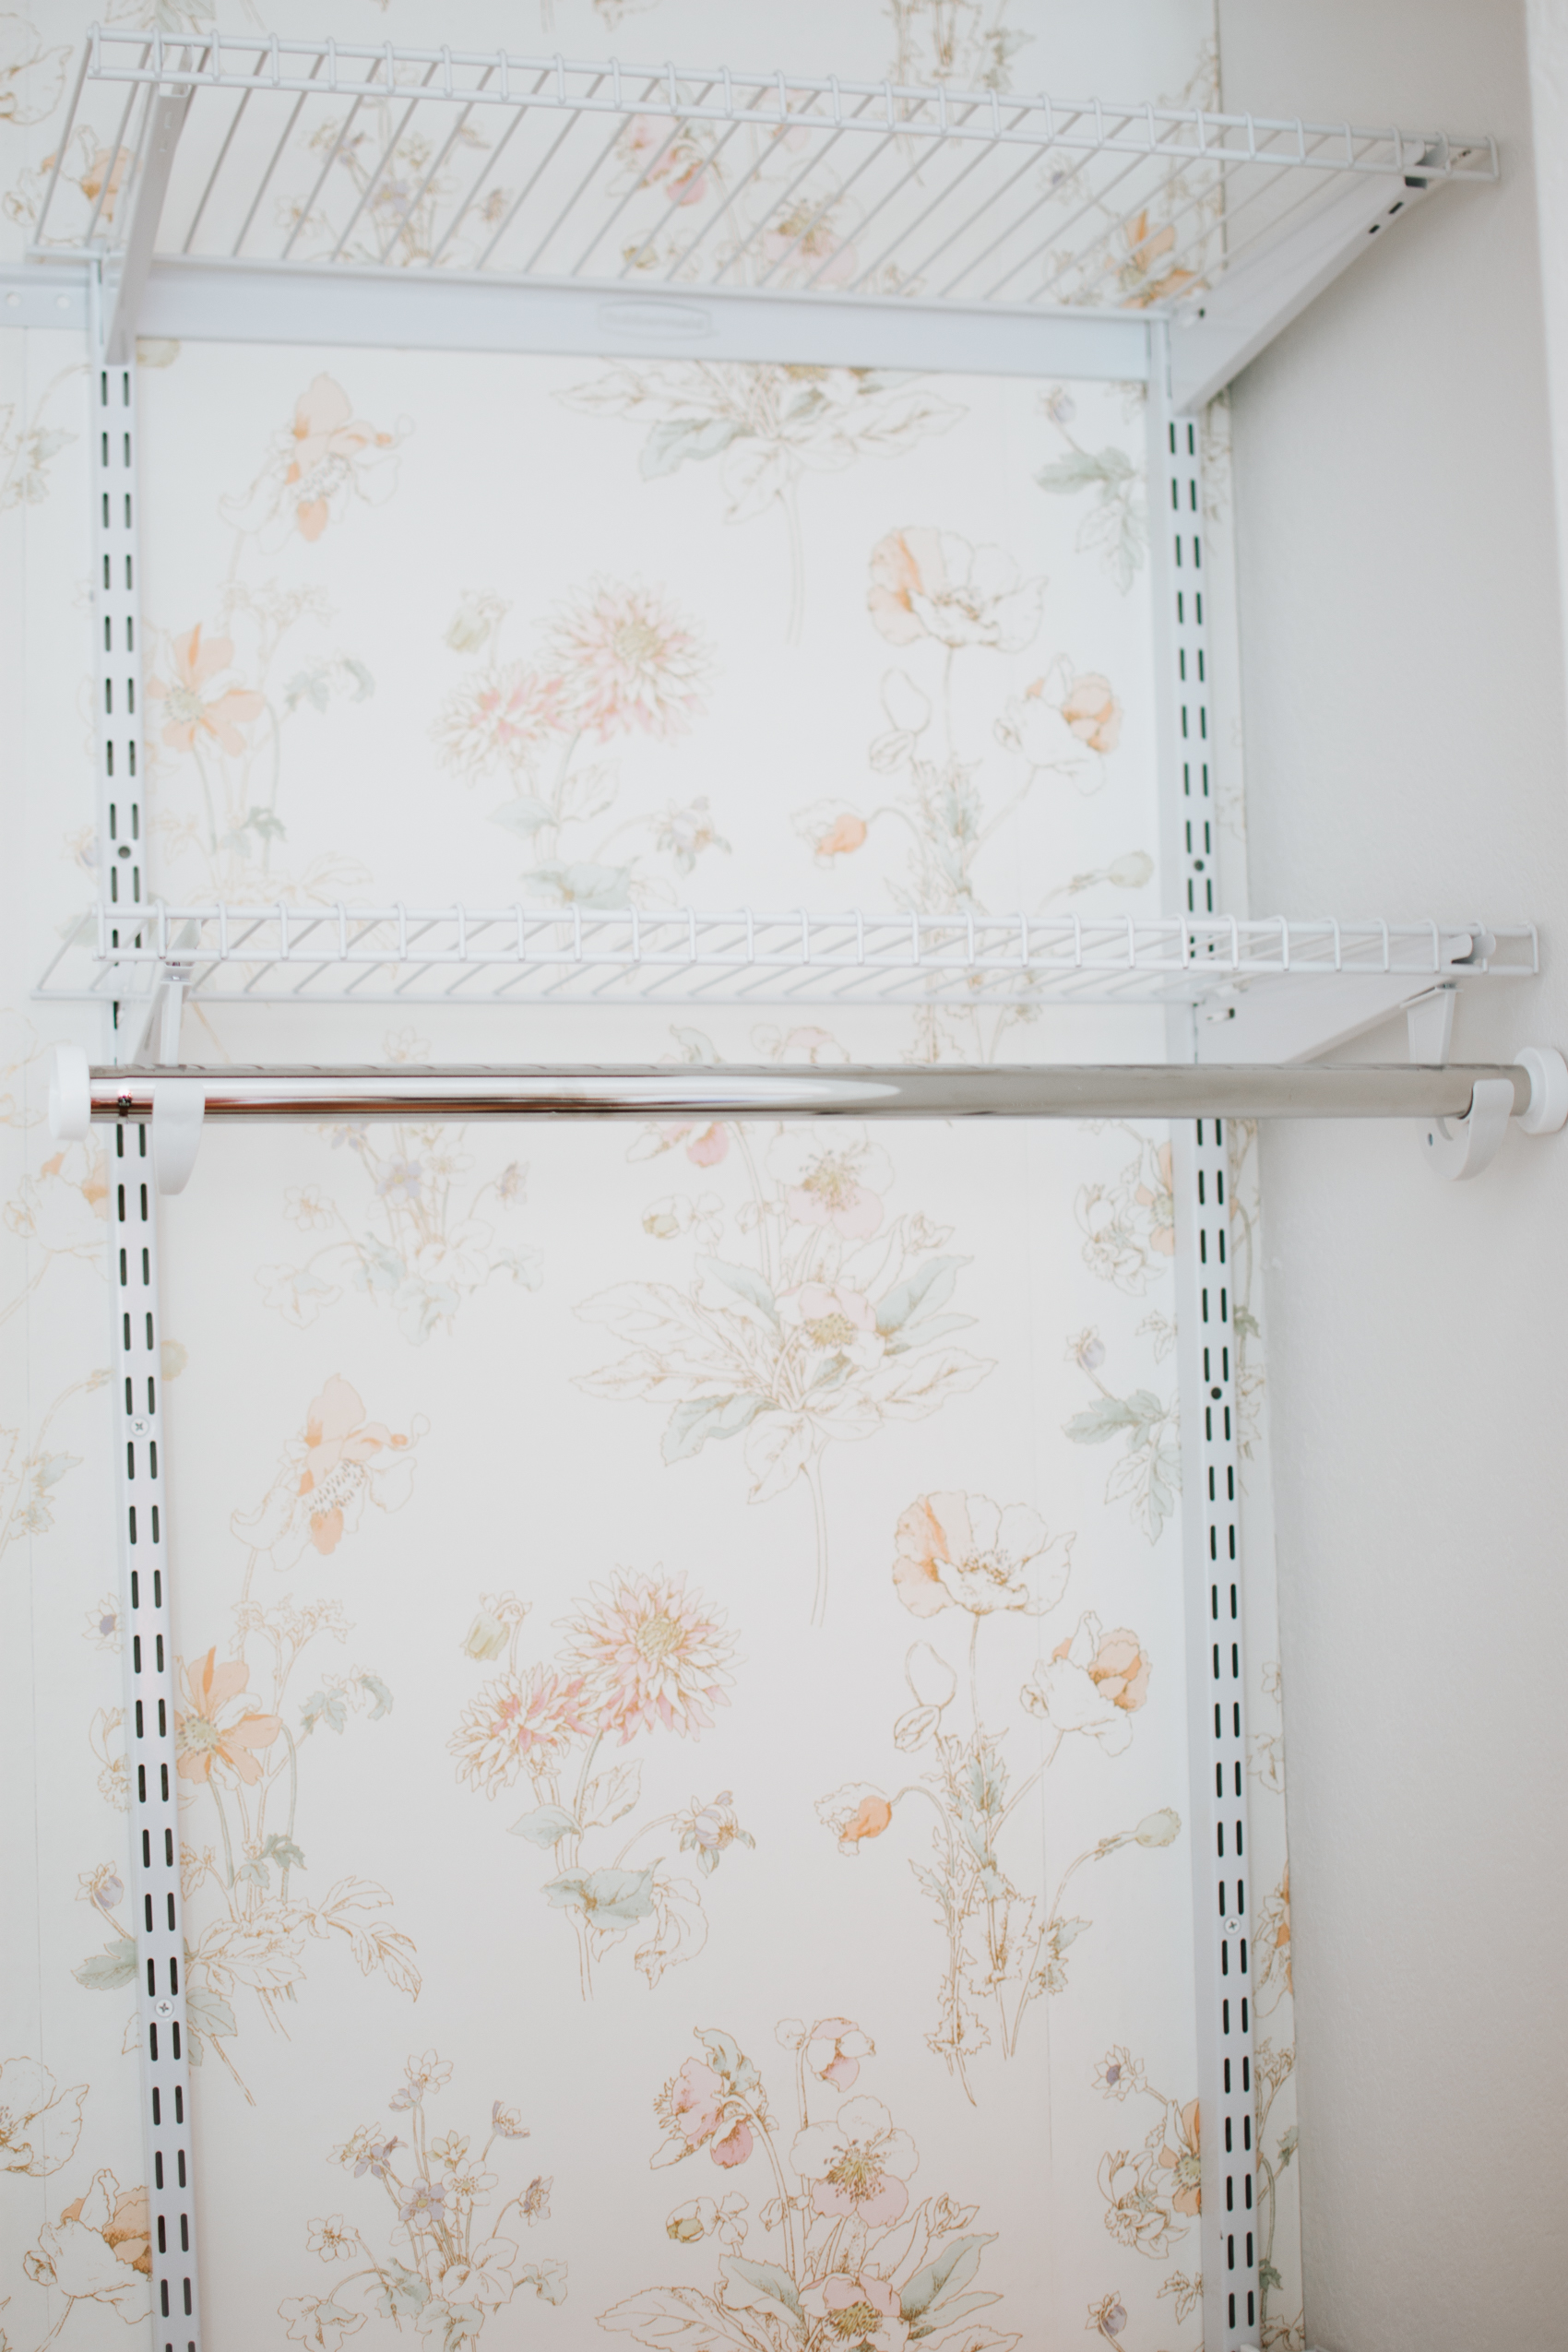 Nursery Closet Reveal with Rubbermaid via. The Pacific Standard | www.thepacificstandard.com #nurserytour #nurseryidea #nurserywallpaper